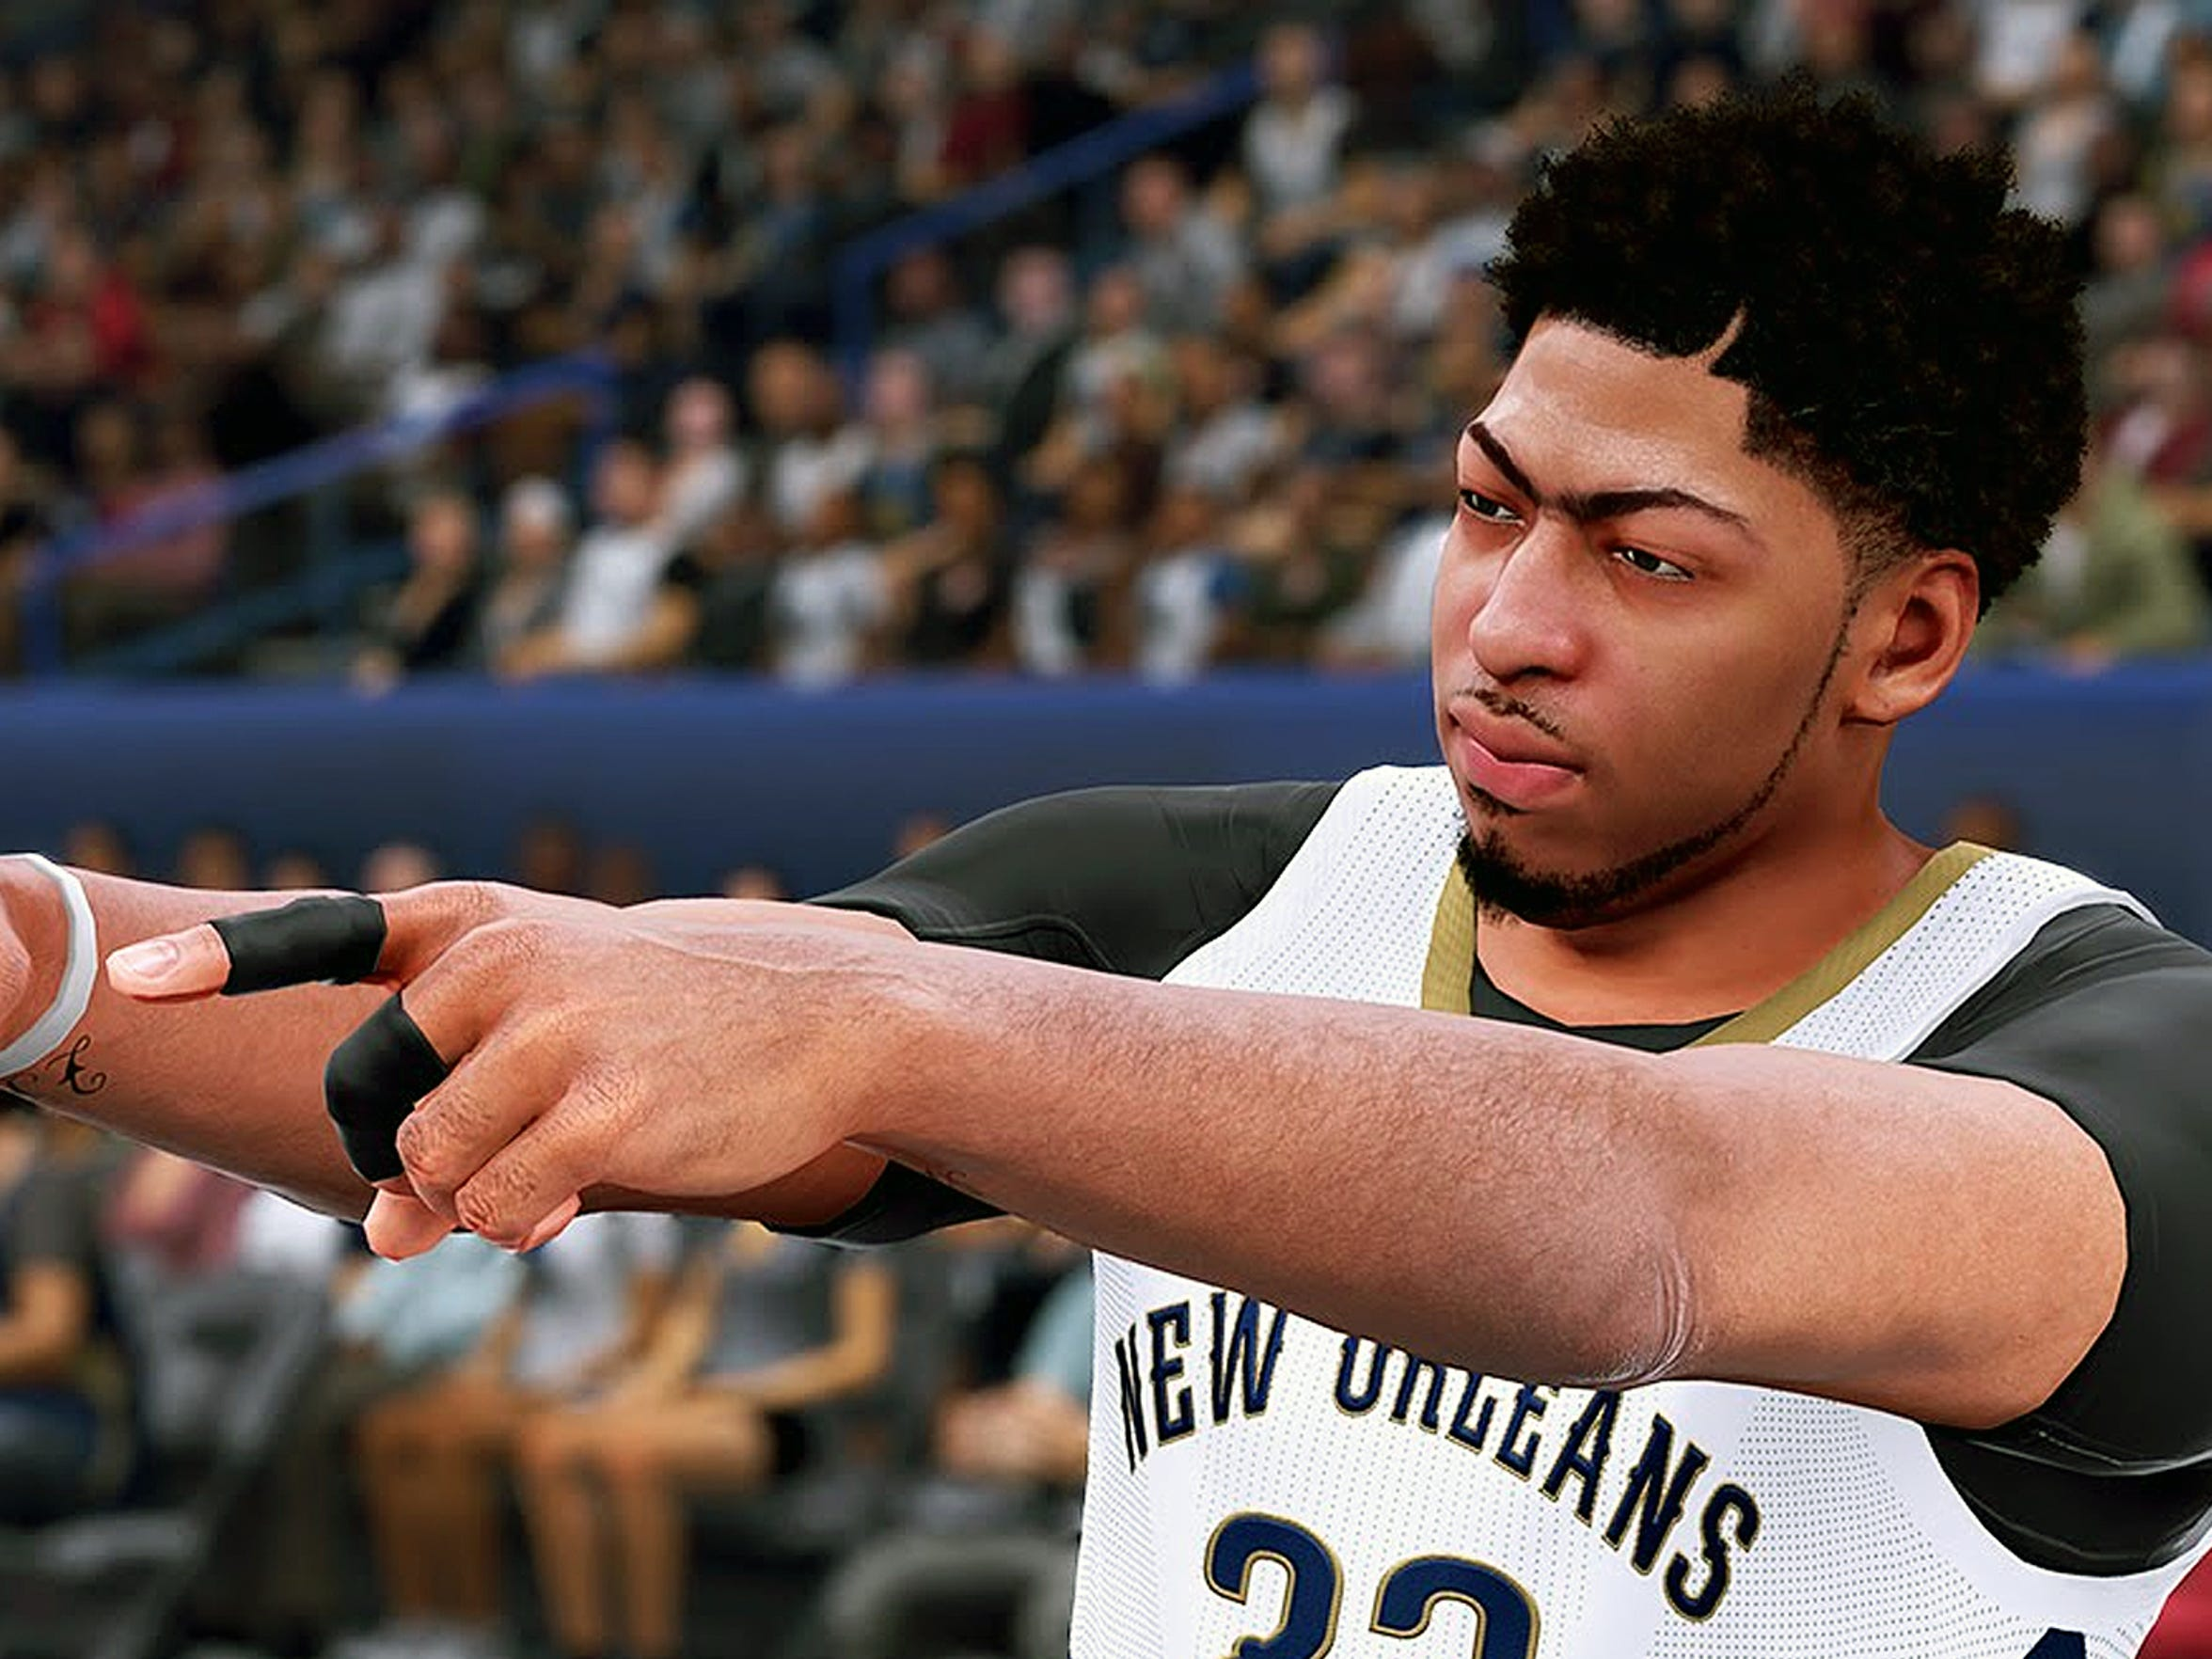 Anthony Davis' trademark unibrow is recreated in all its uniglory in NBA 2K16.